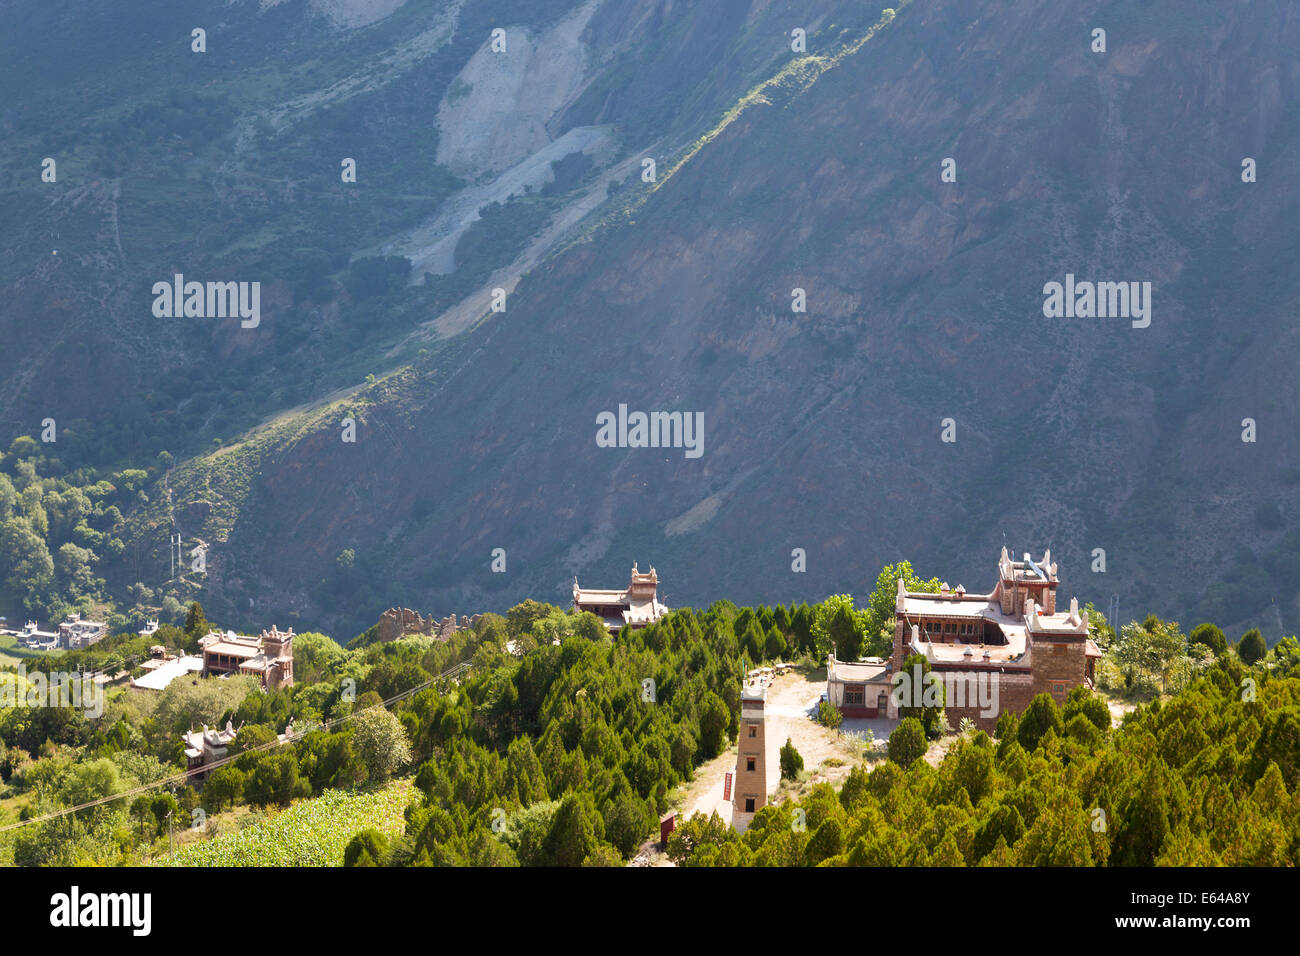 Tibetan houses, Jaiju Zangxhai Village, Jaiju Valley nr Danba, Sopo area, Sichuan, China - Stock Image